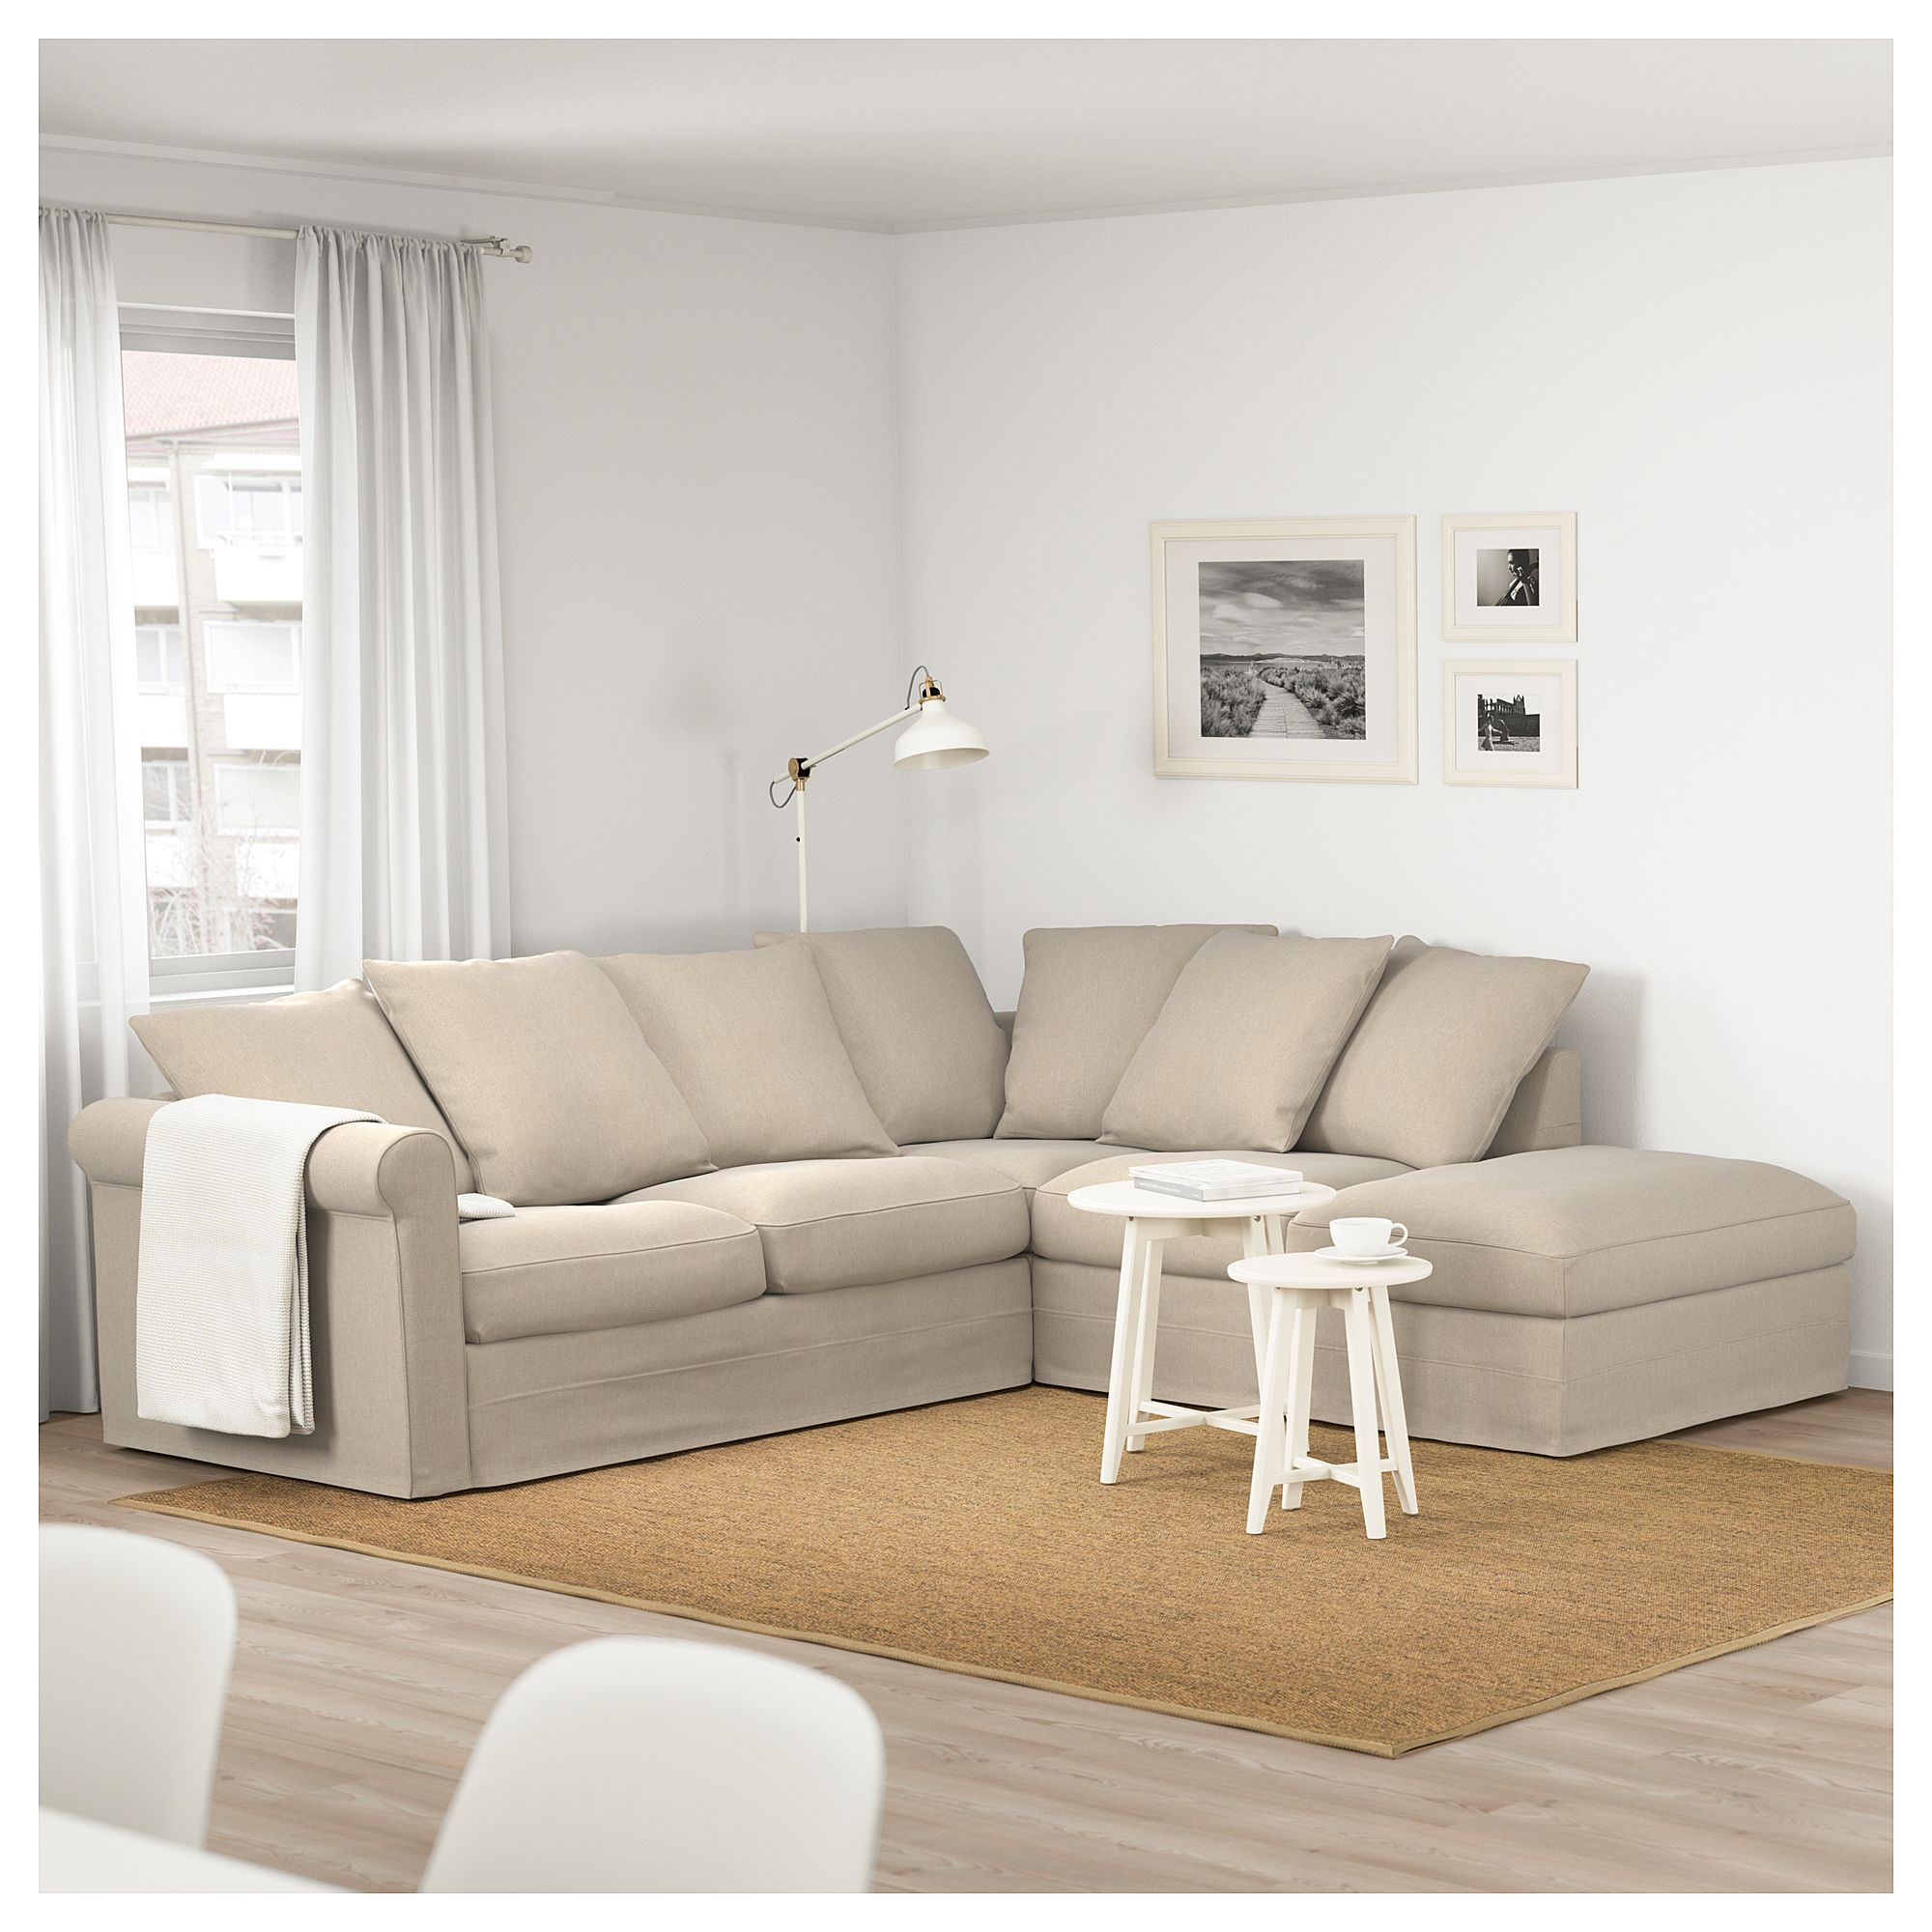 Gronlid Corner Sofa 4 Seat With Open End Sporda Natural With Open End Sporda Natural Modular Sectional Sofa Ikea Sofa Corner Sofa